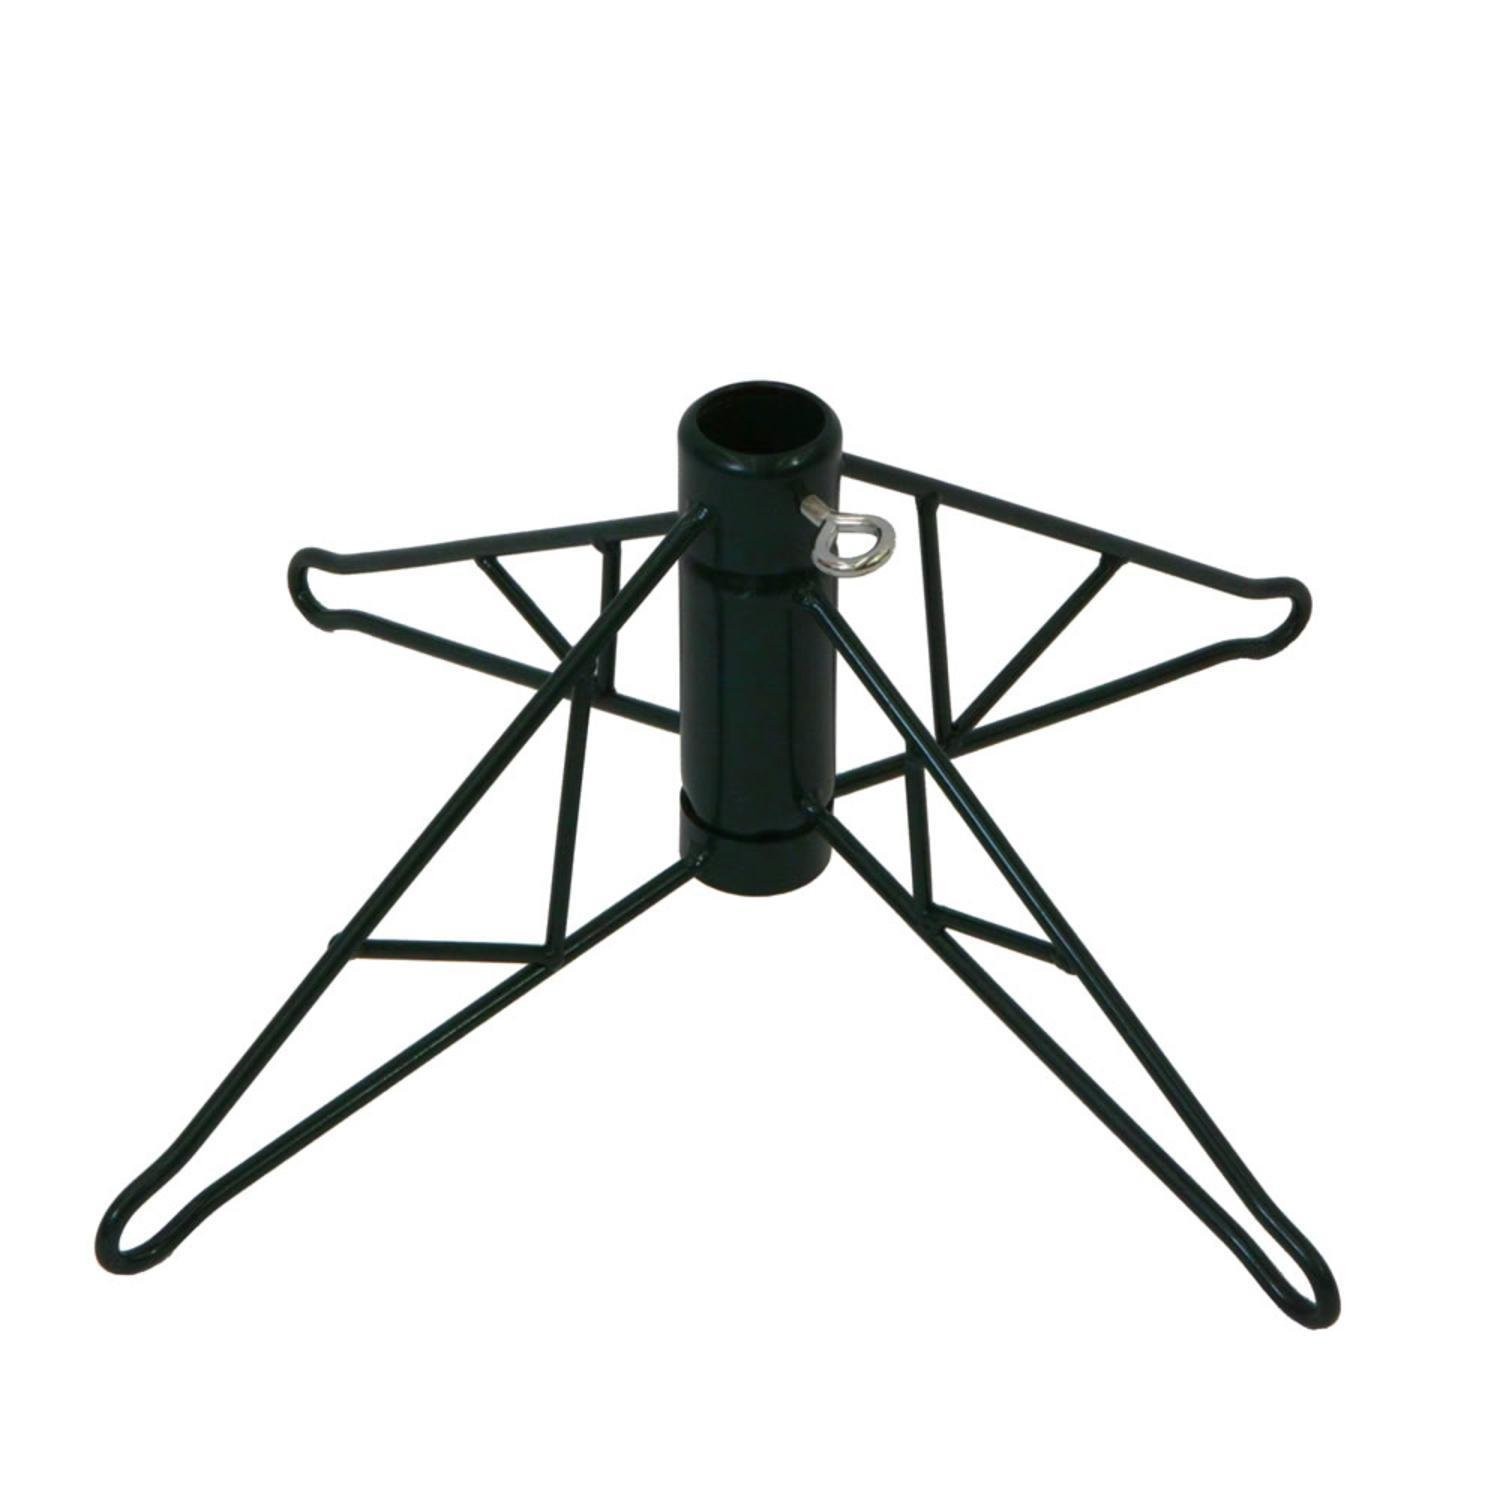 Northlight Green Metal Christmas Tree Stand For 4' - 4.5' Artificial Trees